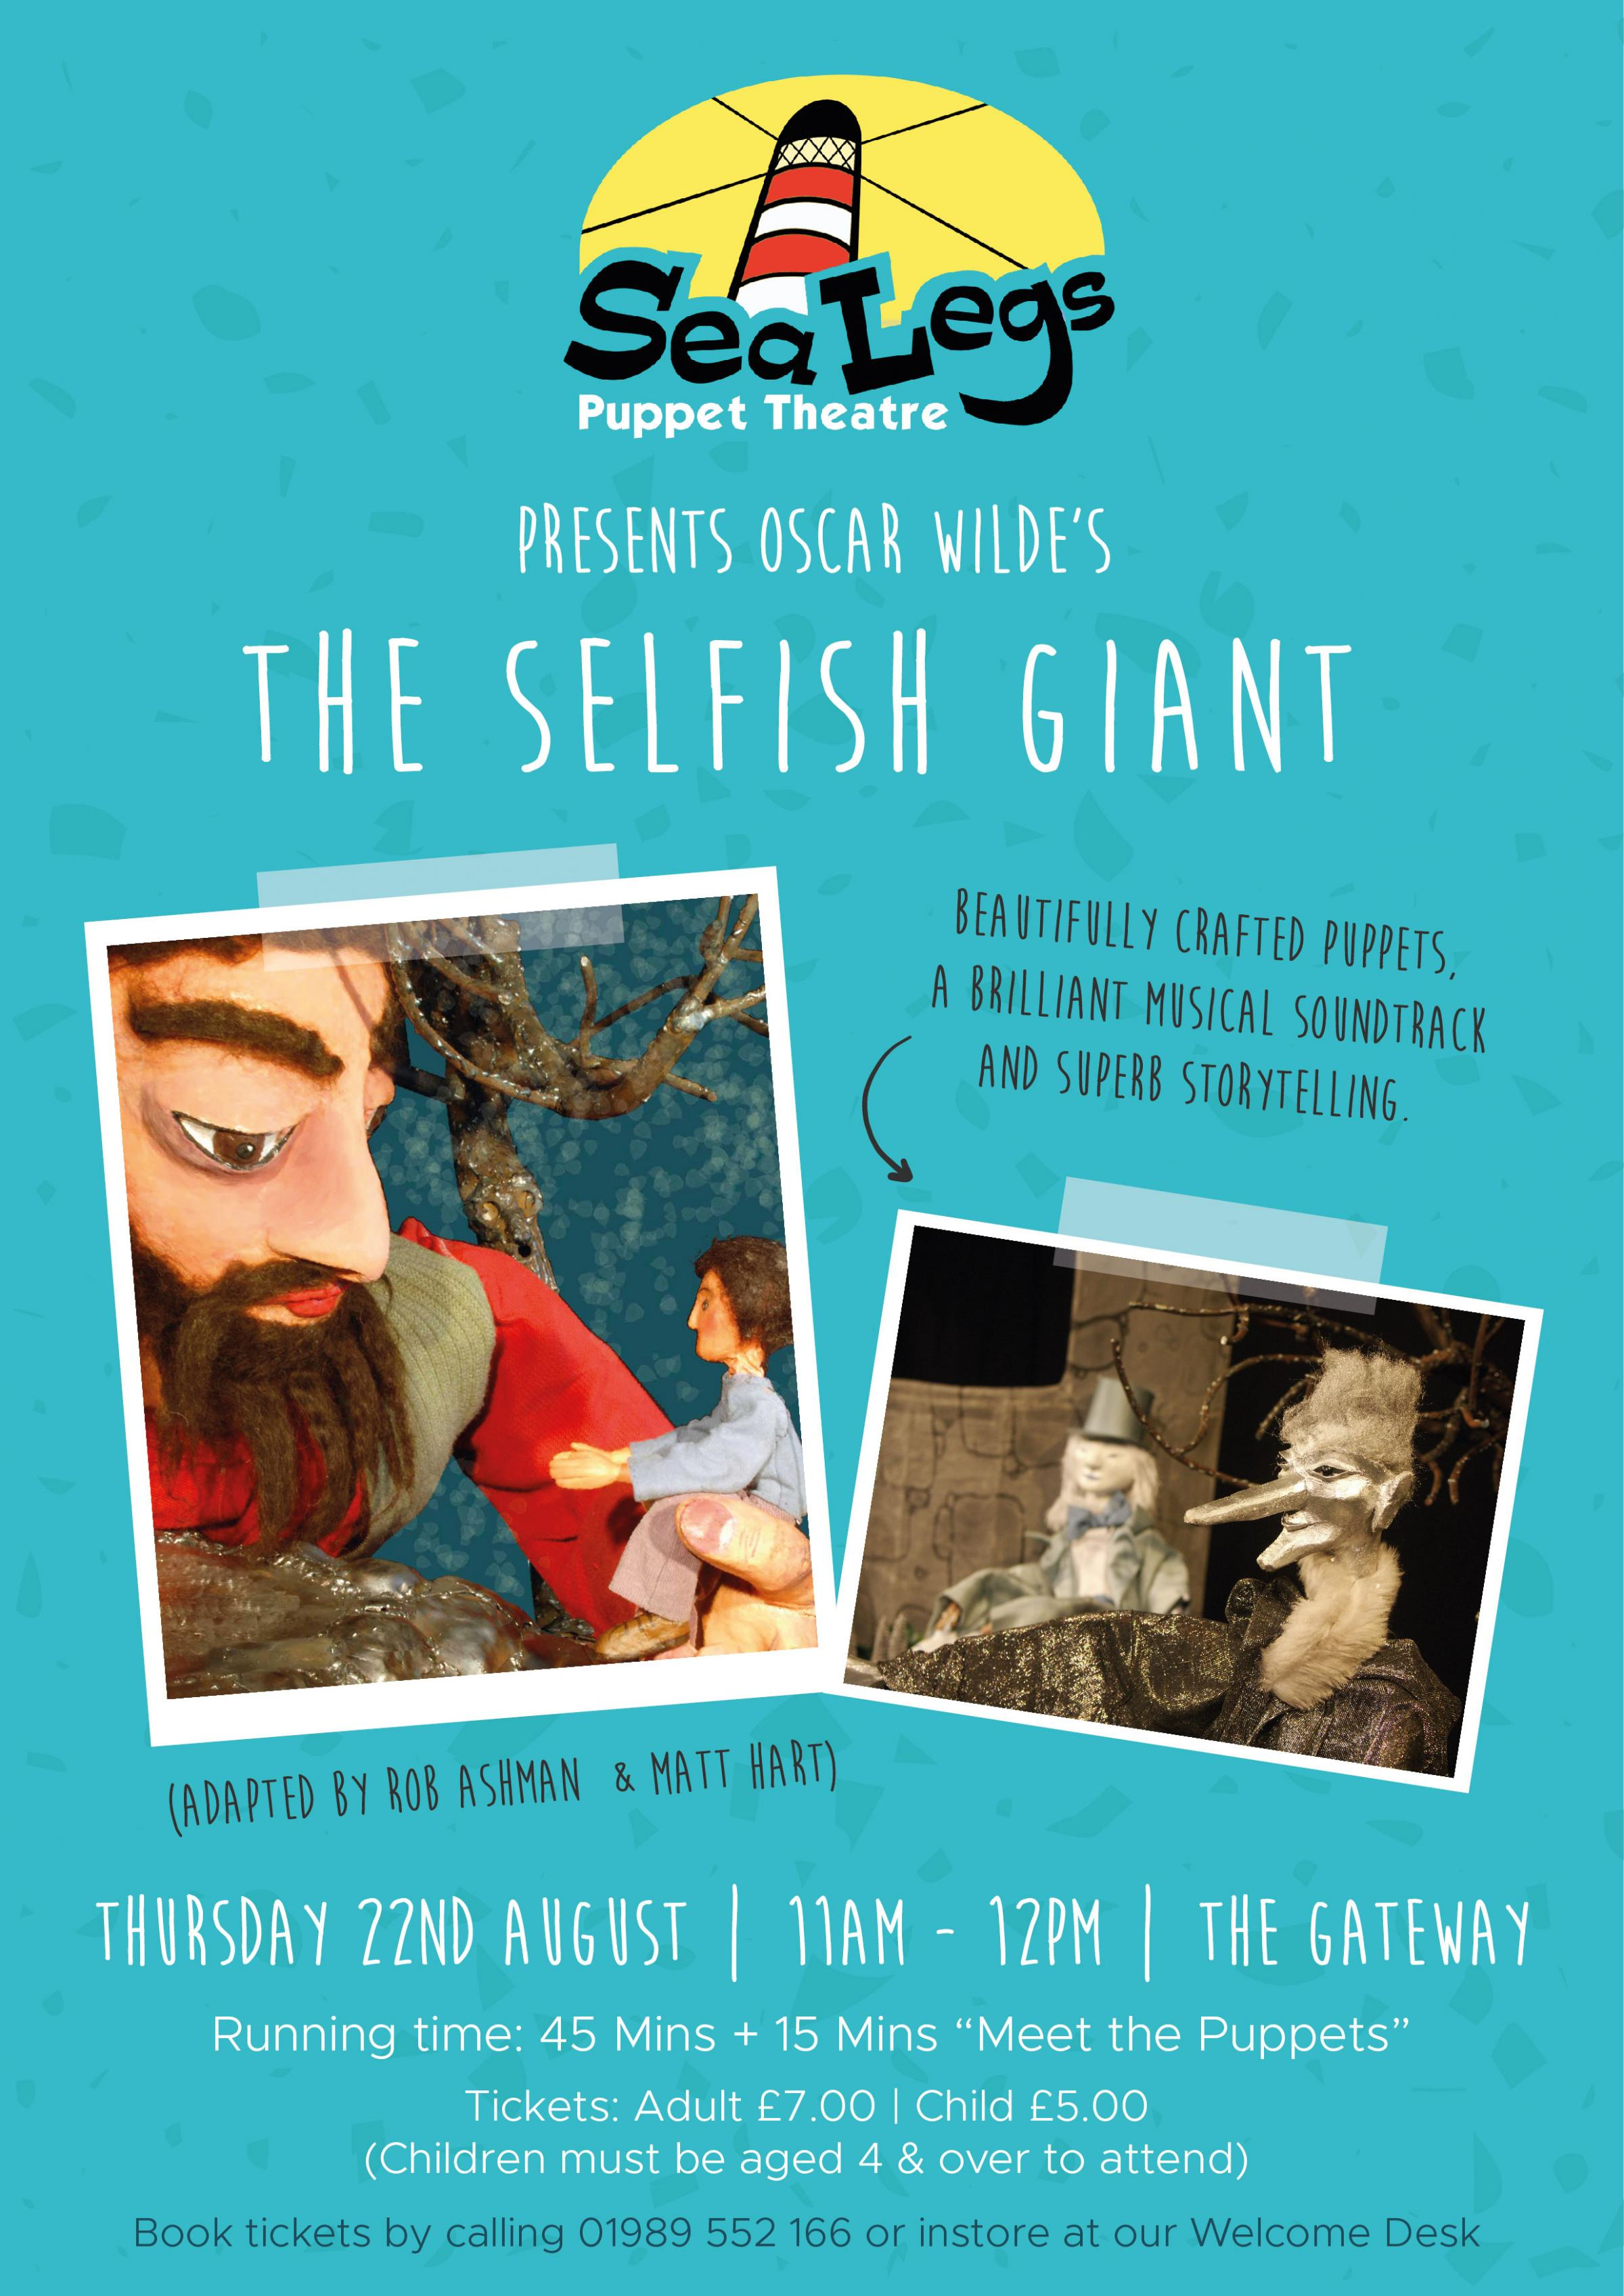 Sea Legs Puppet Theatre present The Selfish Giant